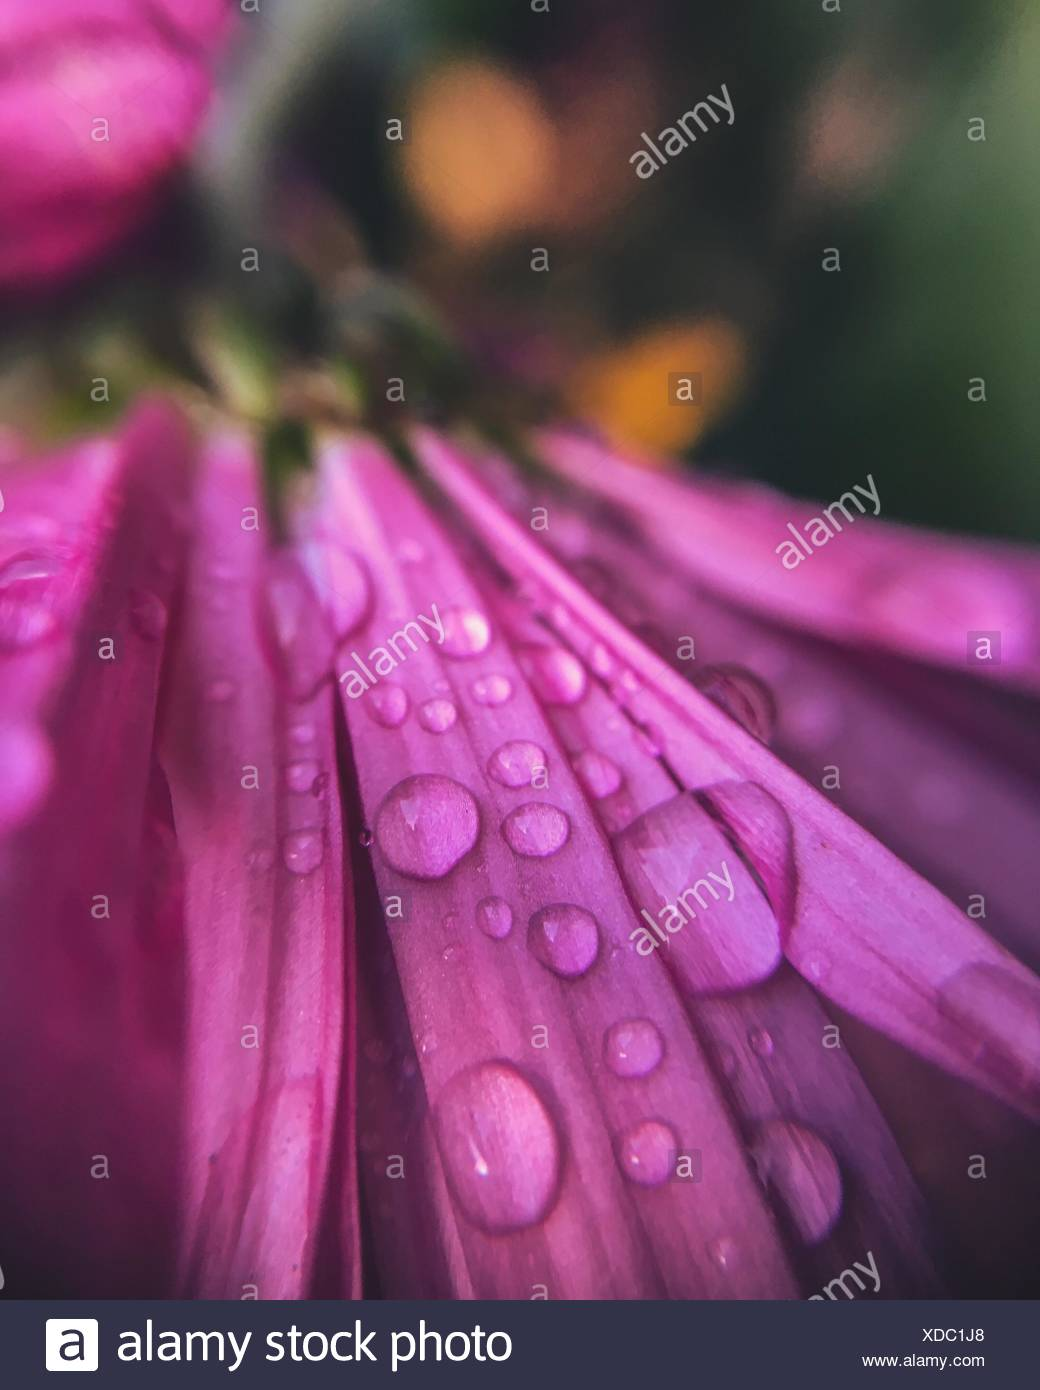 Close-Up Of Raindrops On Pink Flower - Stock Image